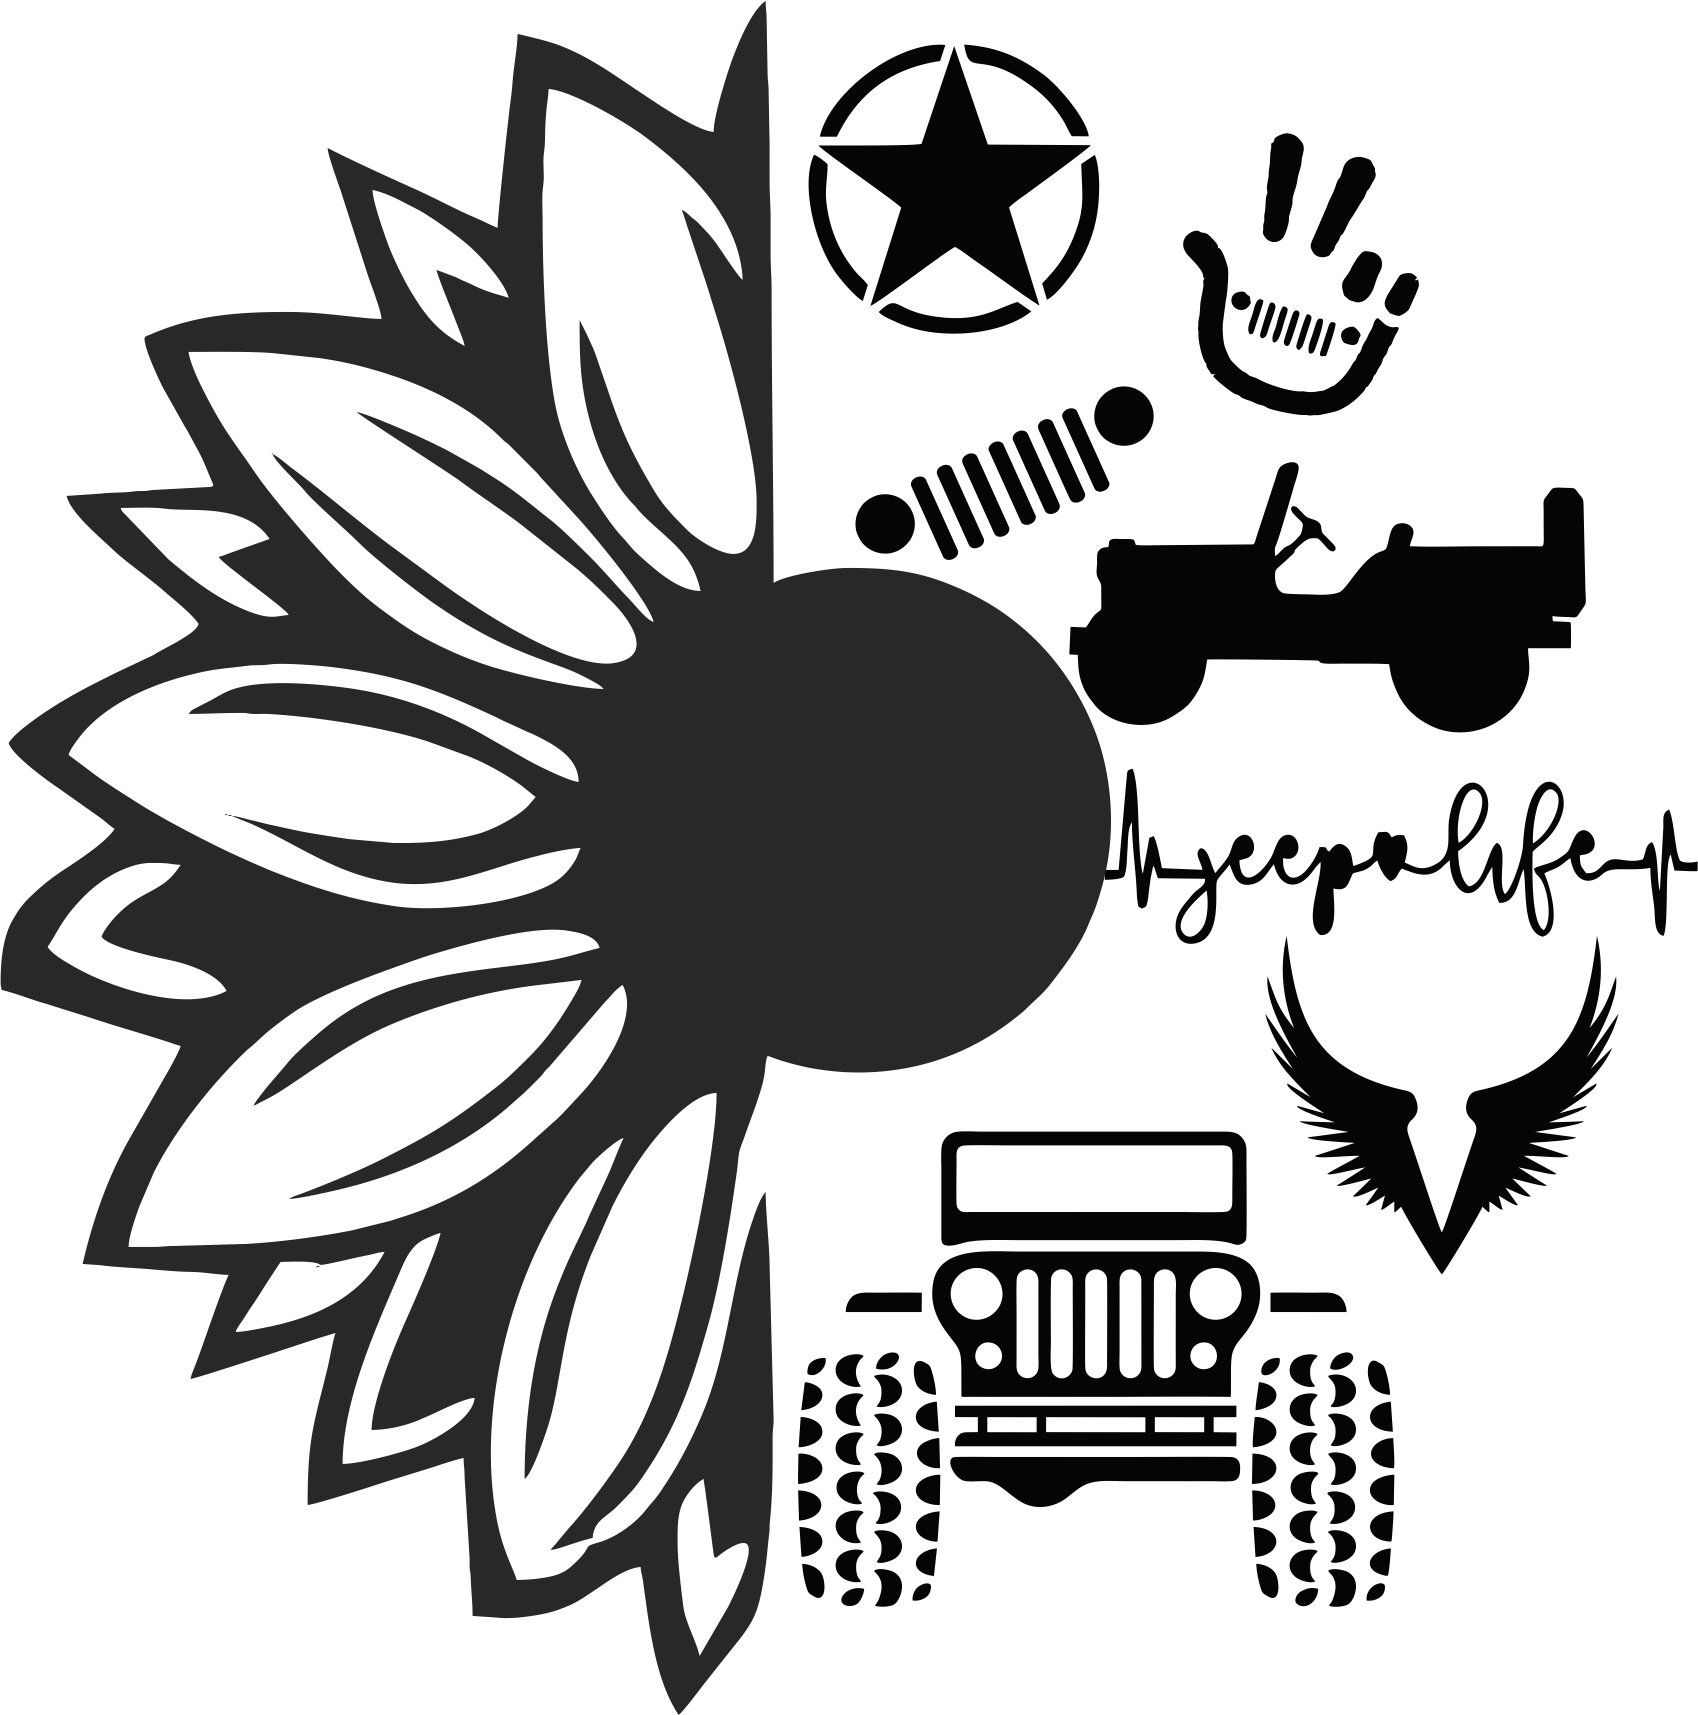 Download Sunflower Jeep SVG in 2020 | Cricut projects vinyl, Cricut ...